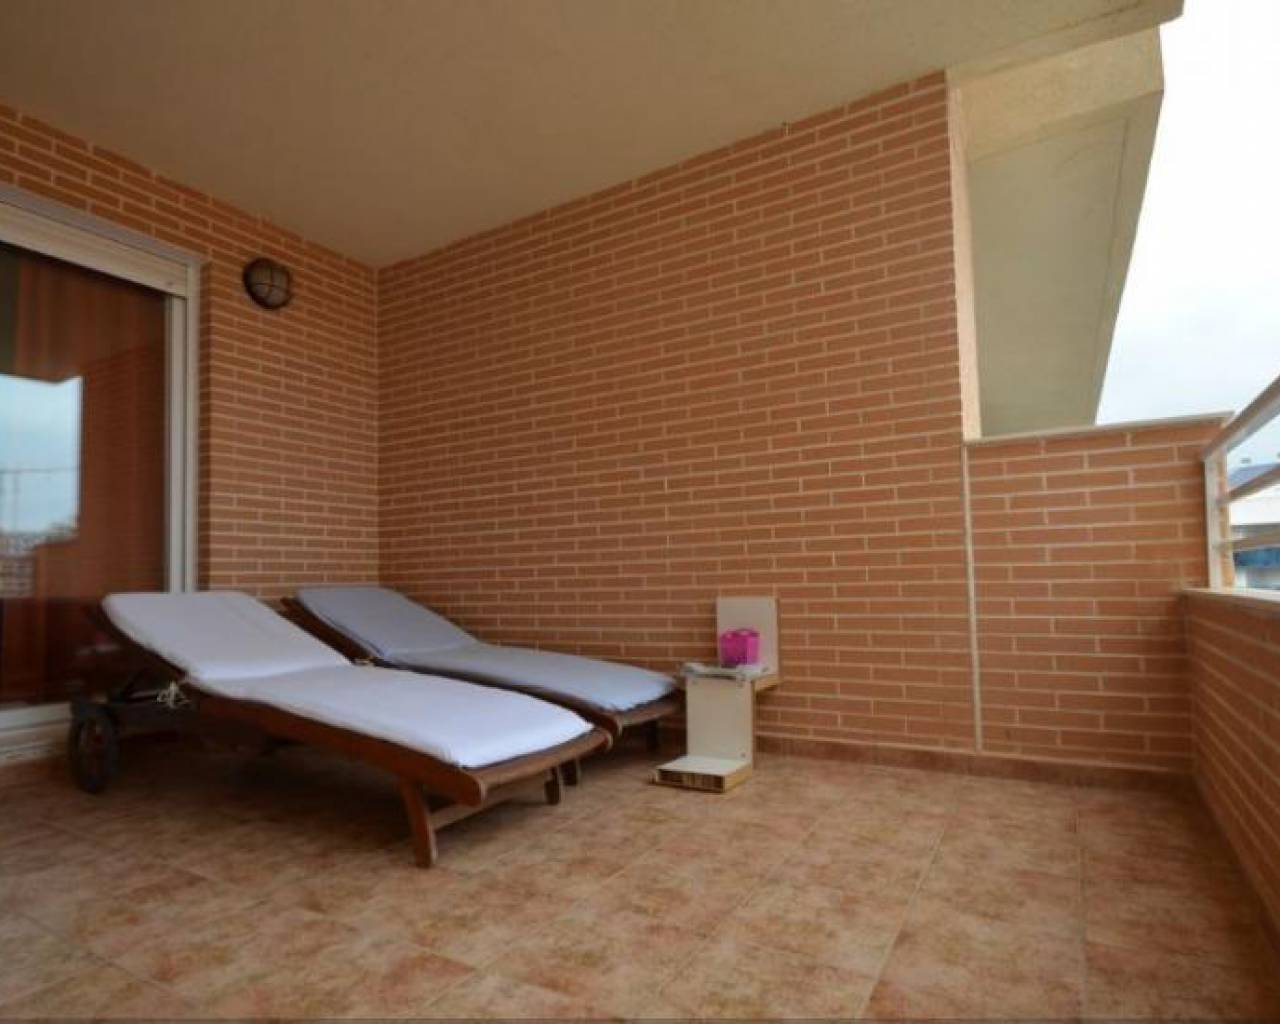 Apartment - Sale - Benidorm - La Cala